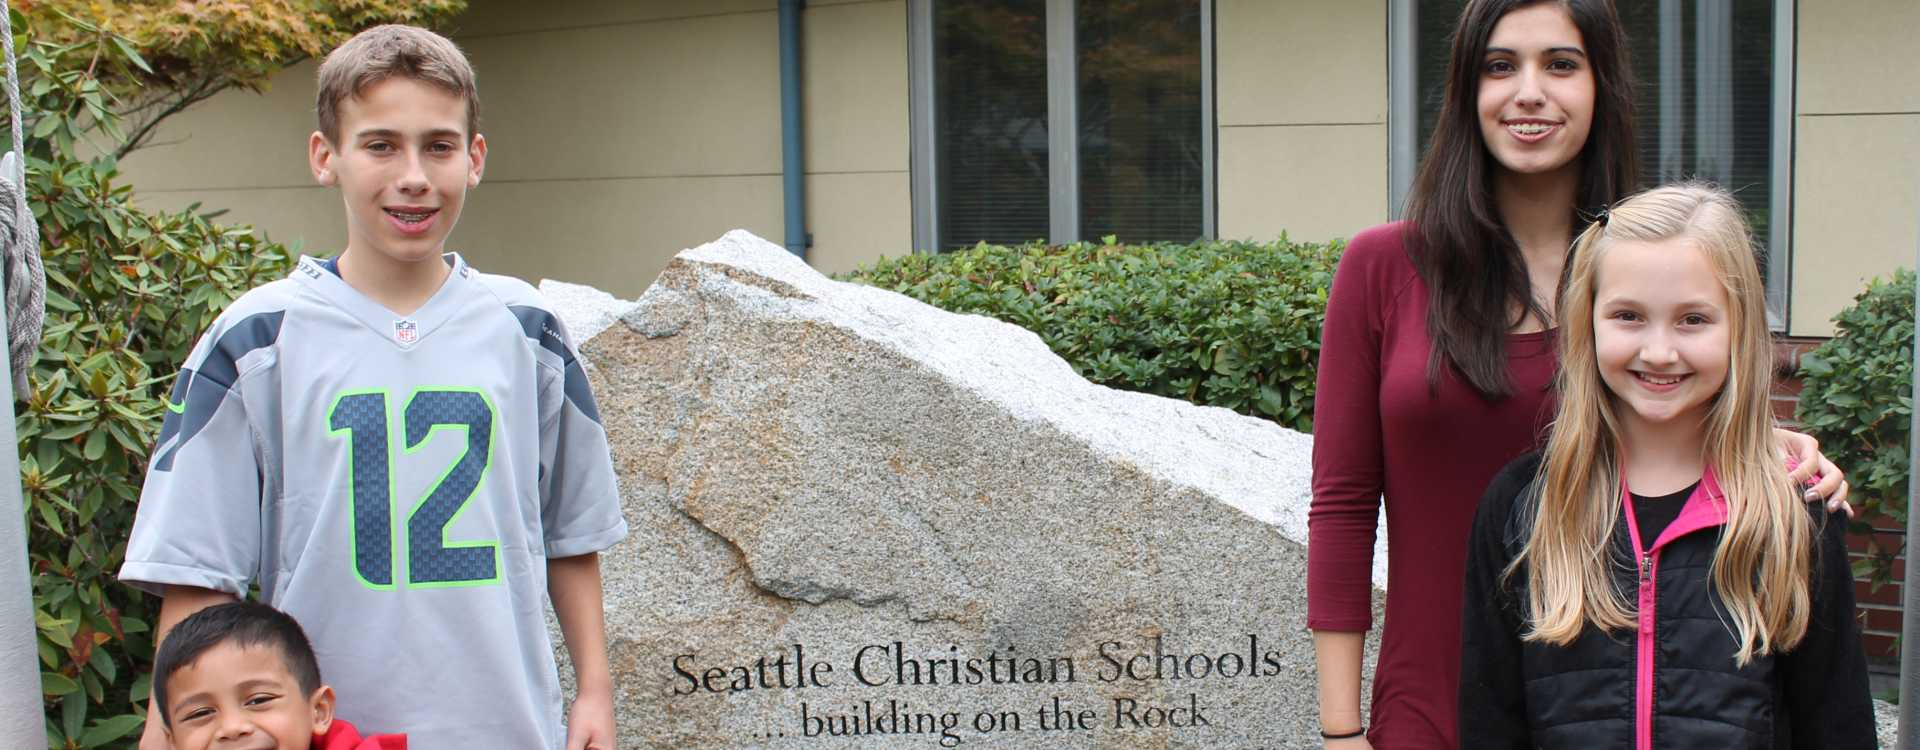 Seattle Christian School